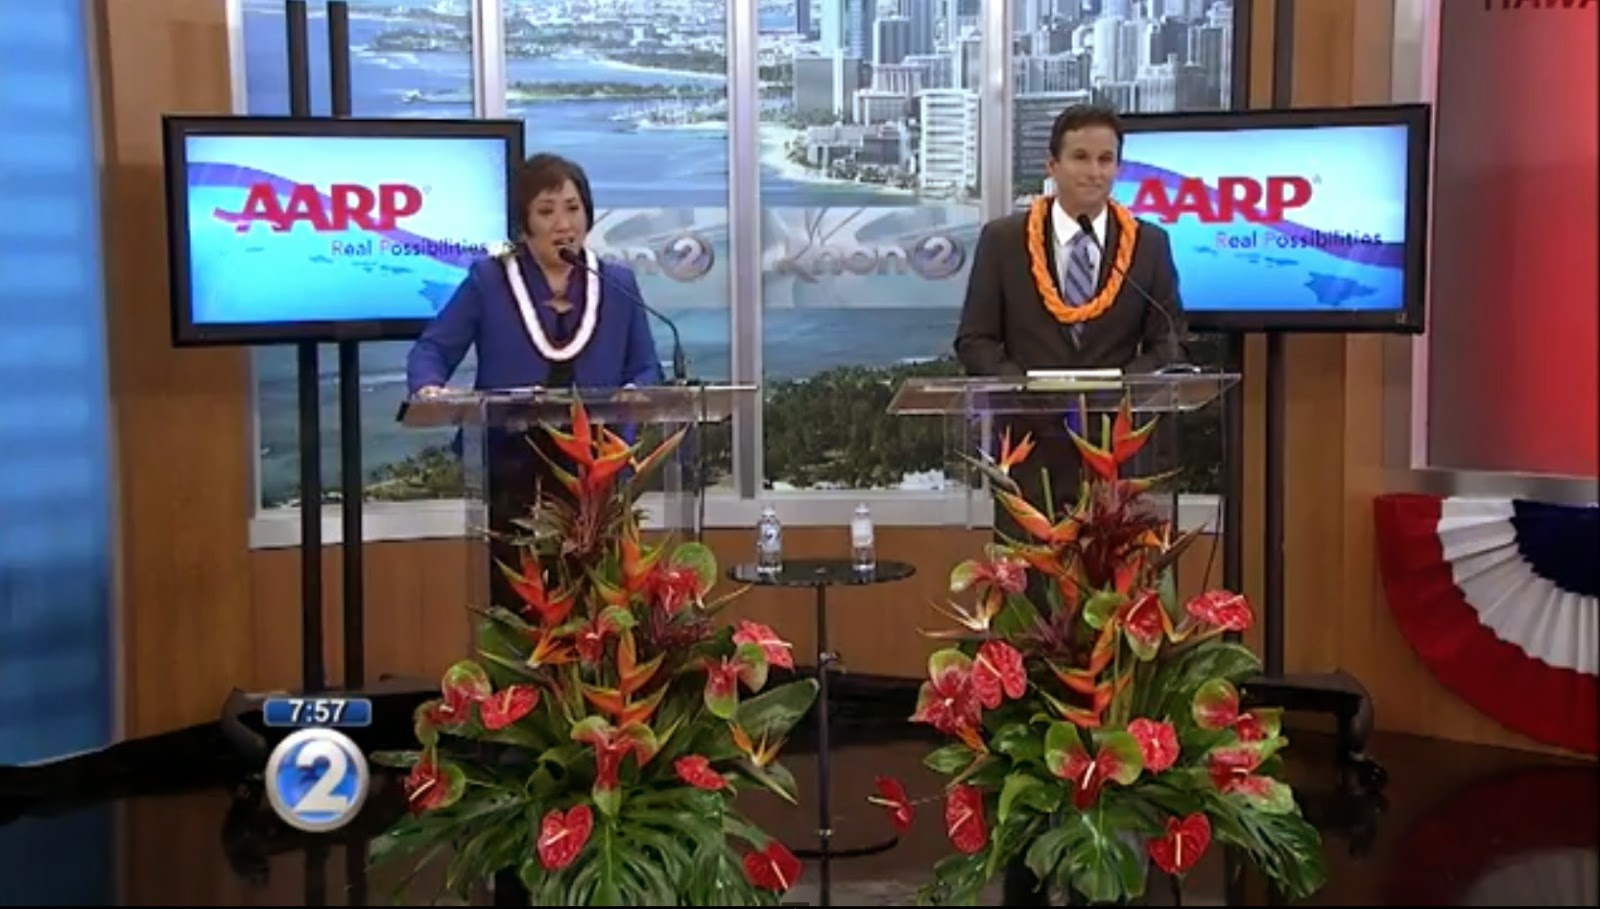 screen shot of AARP forum on KHON2 TV